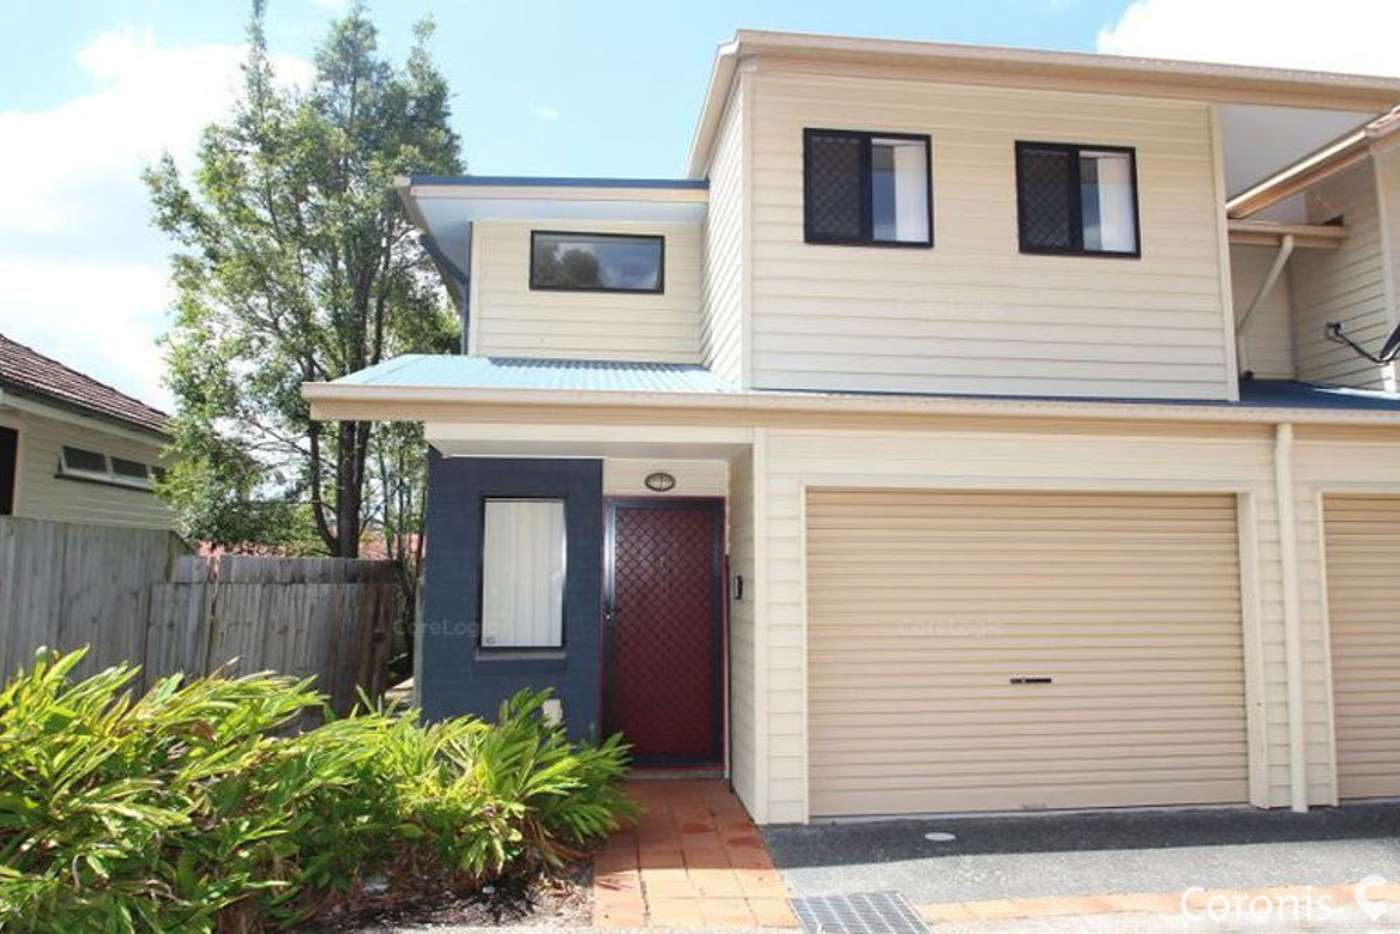 Main view of Homely house listing, 1/35 Tenby Street, Mount Gravatt QLD 4122